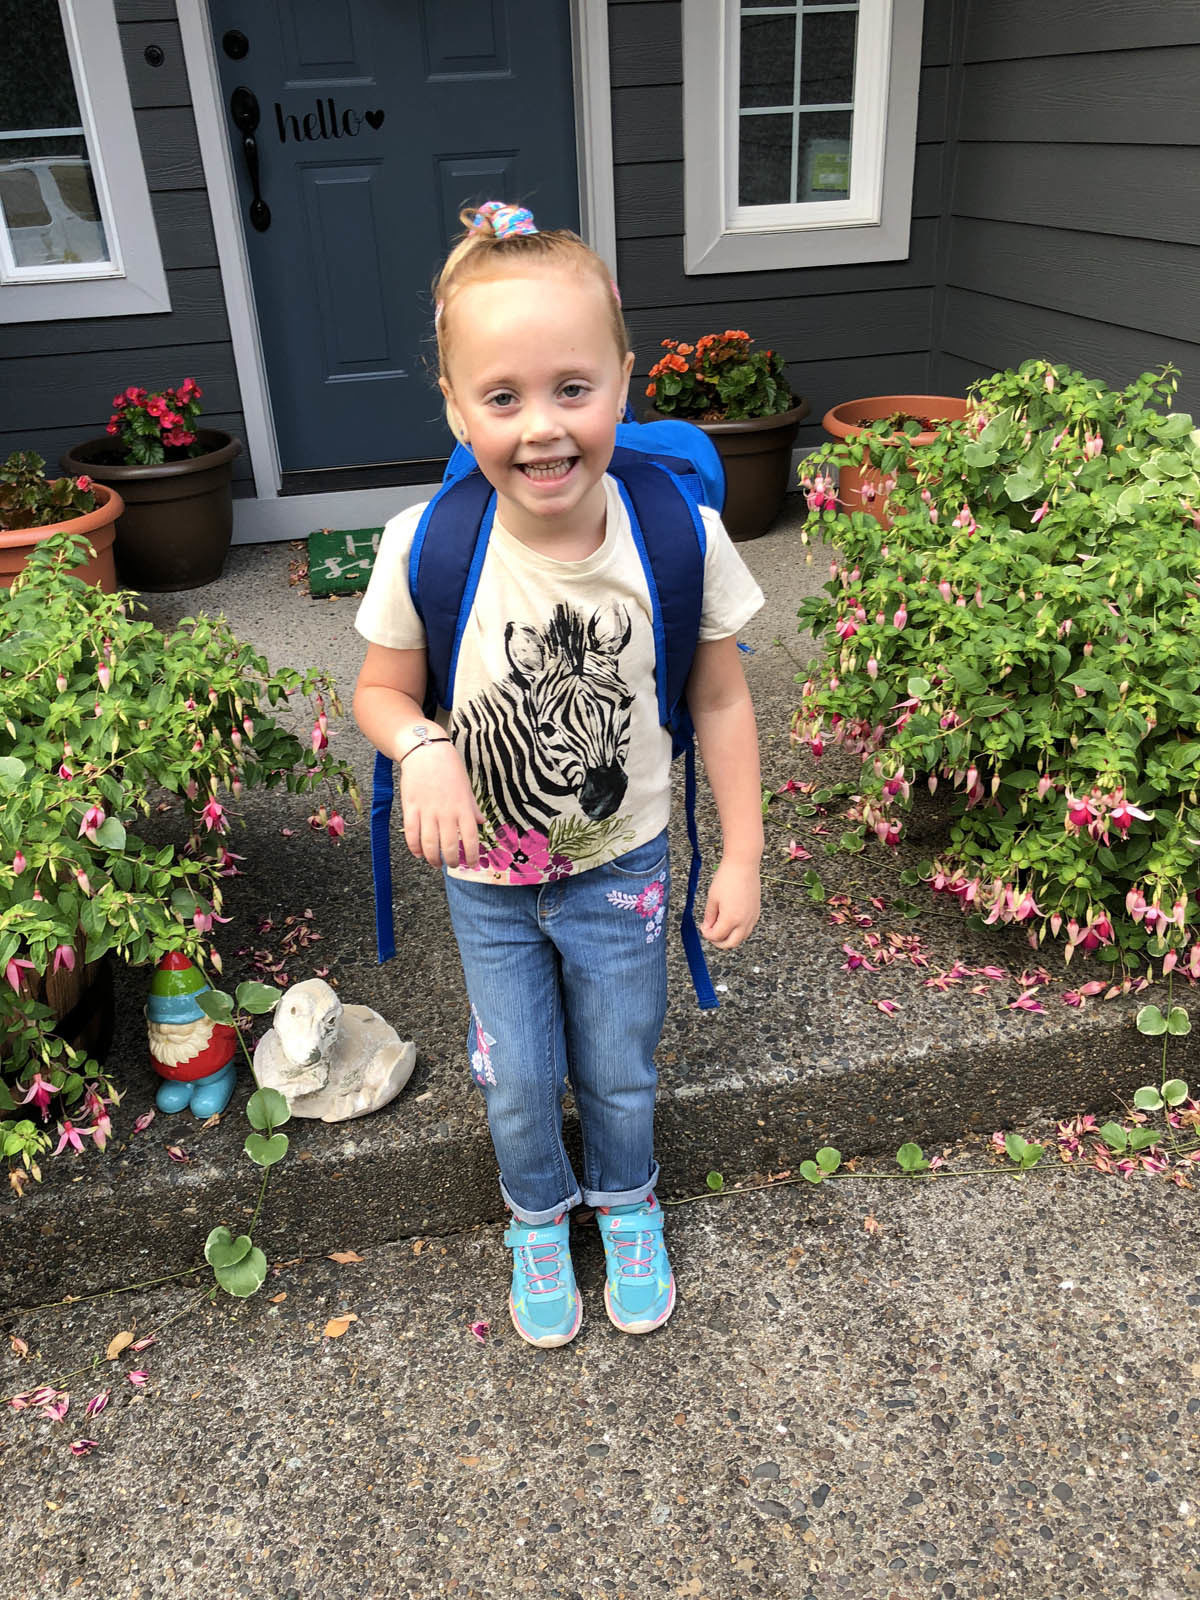 Ellie's first day at school [VIDEO]